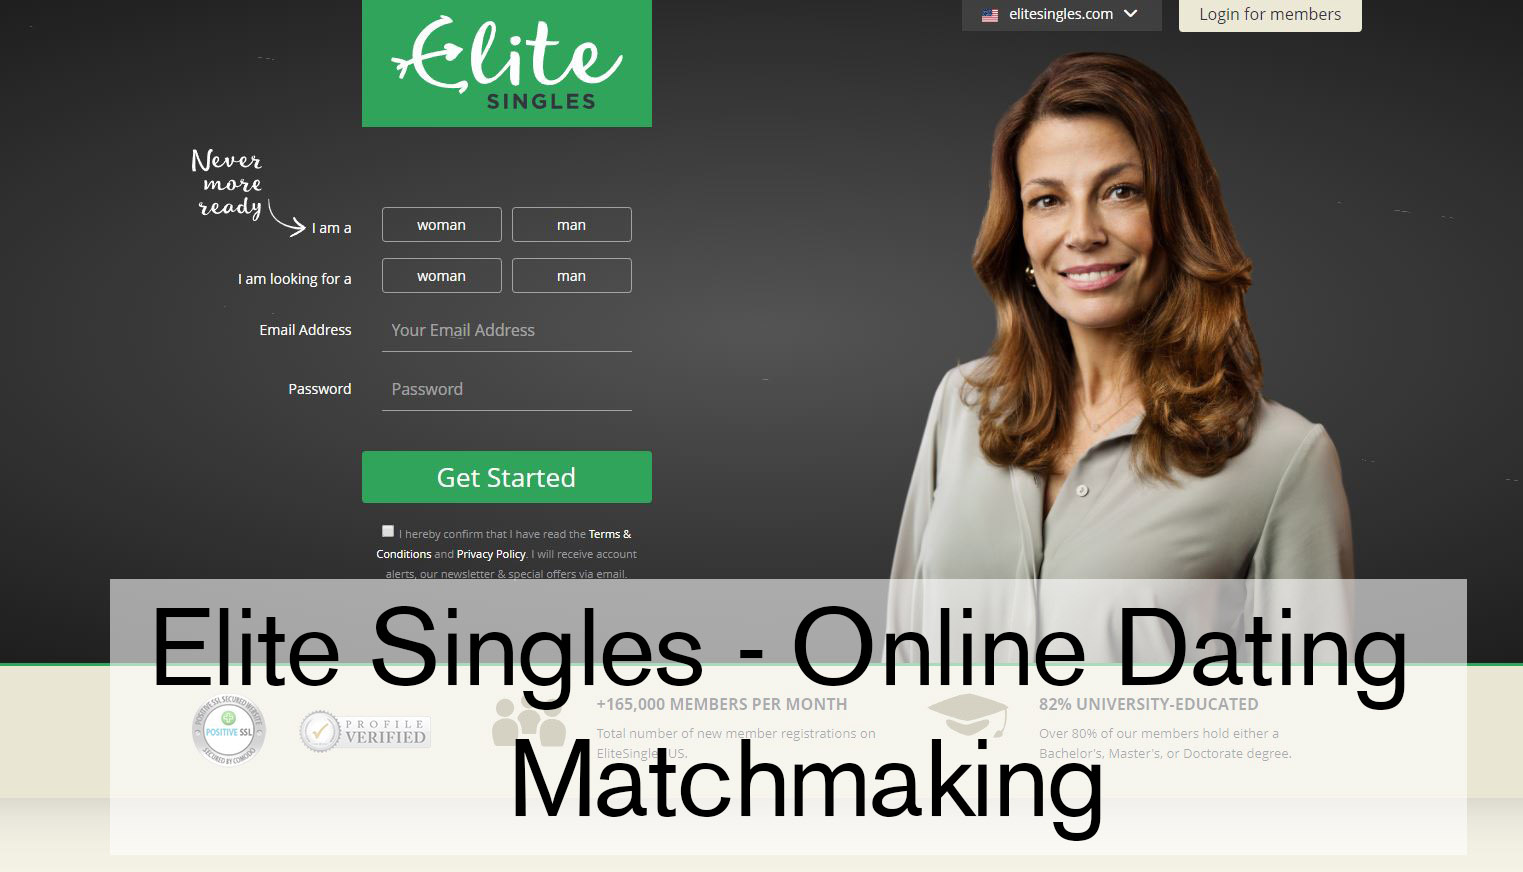 Elite Singles - Online Dating | Matchmaking